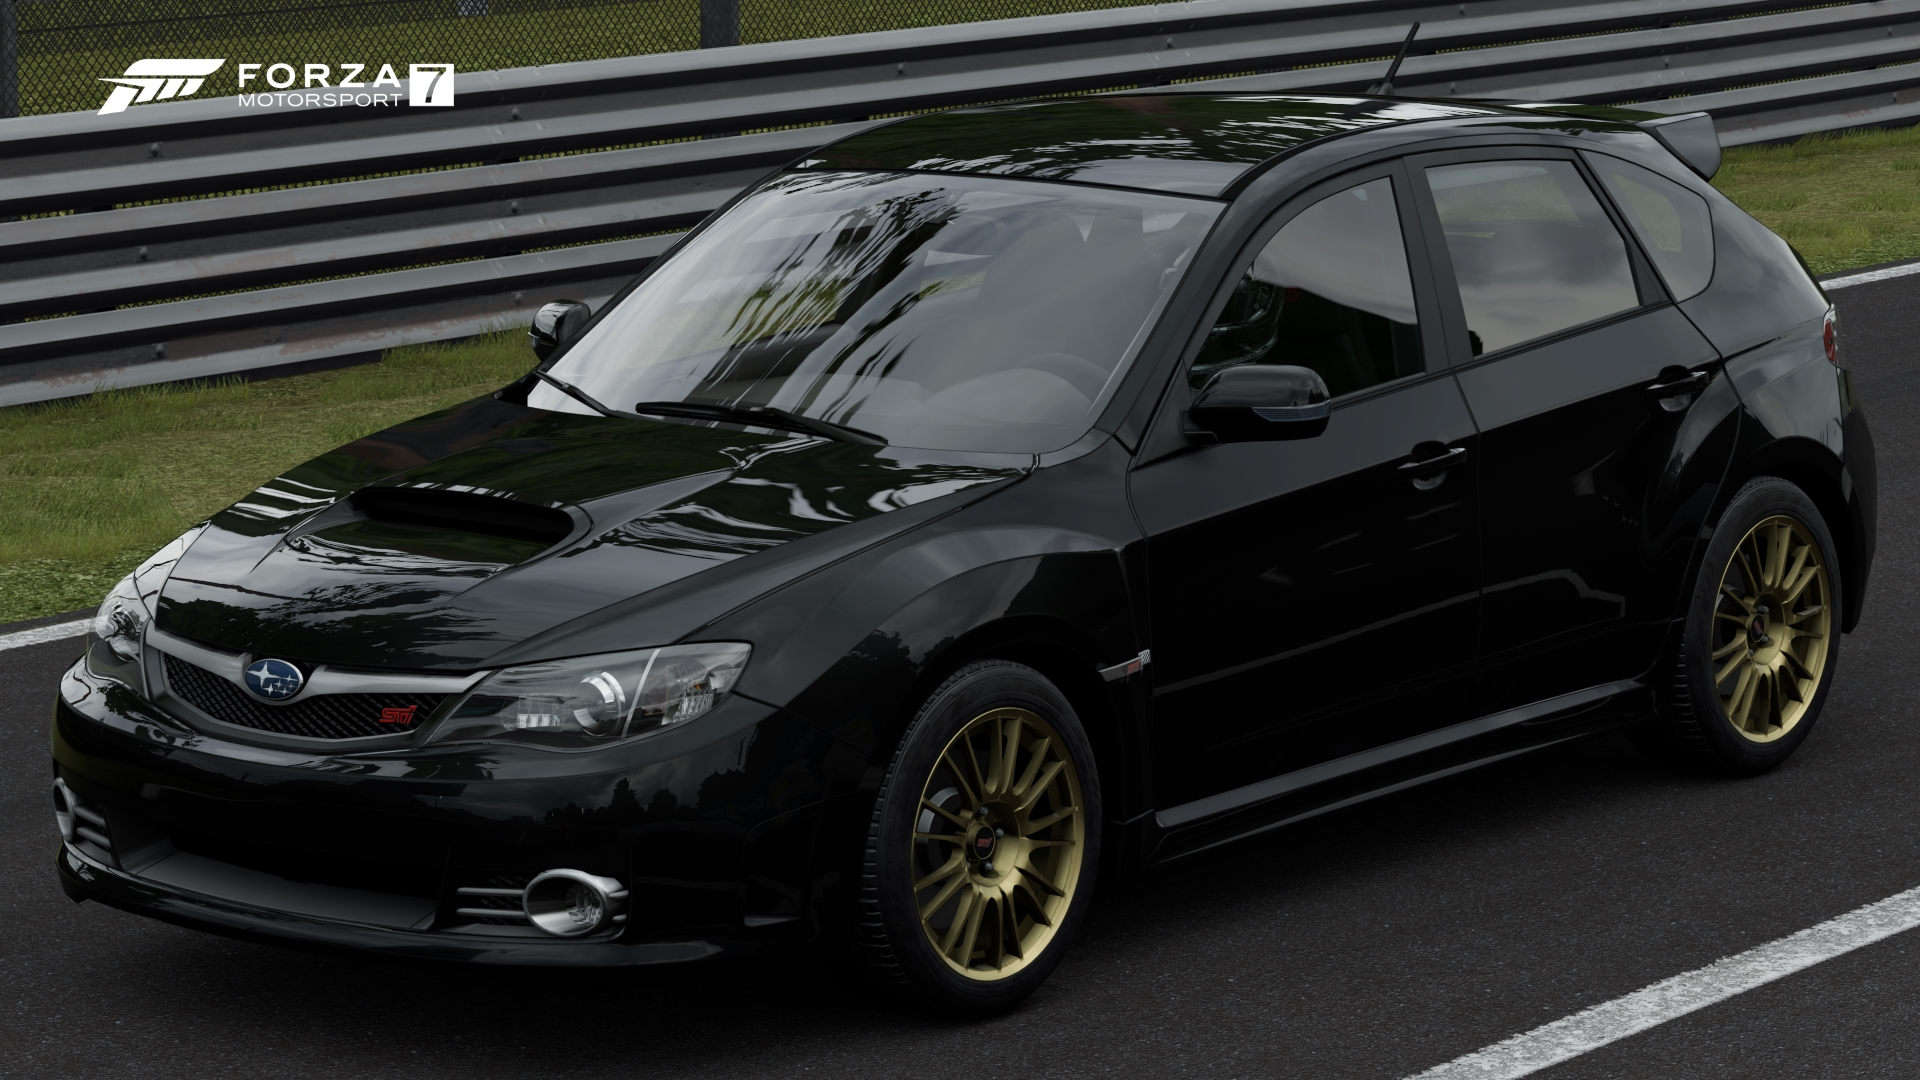 subaru impreza wrx sti 2008 forza motorsport wiki. Black Bedroom Furniture Sets. Home Design Ideas